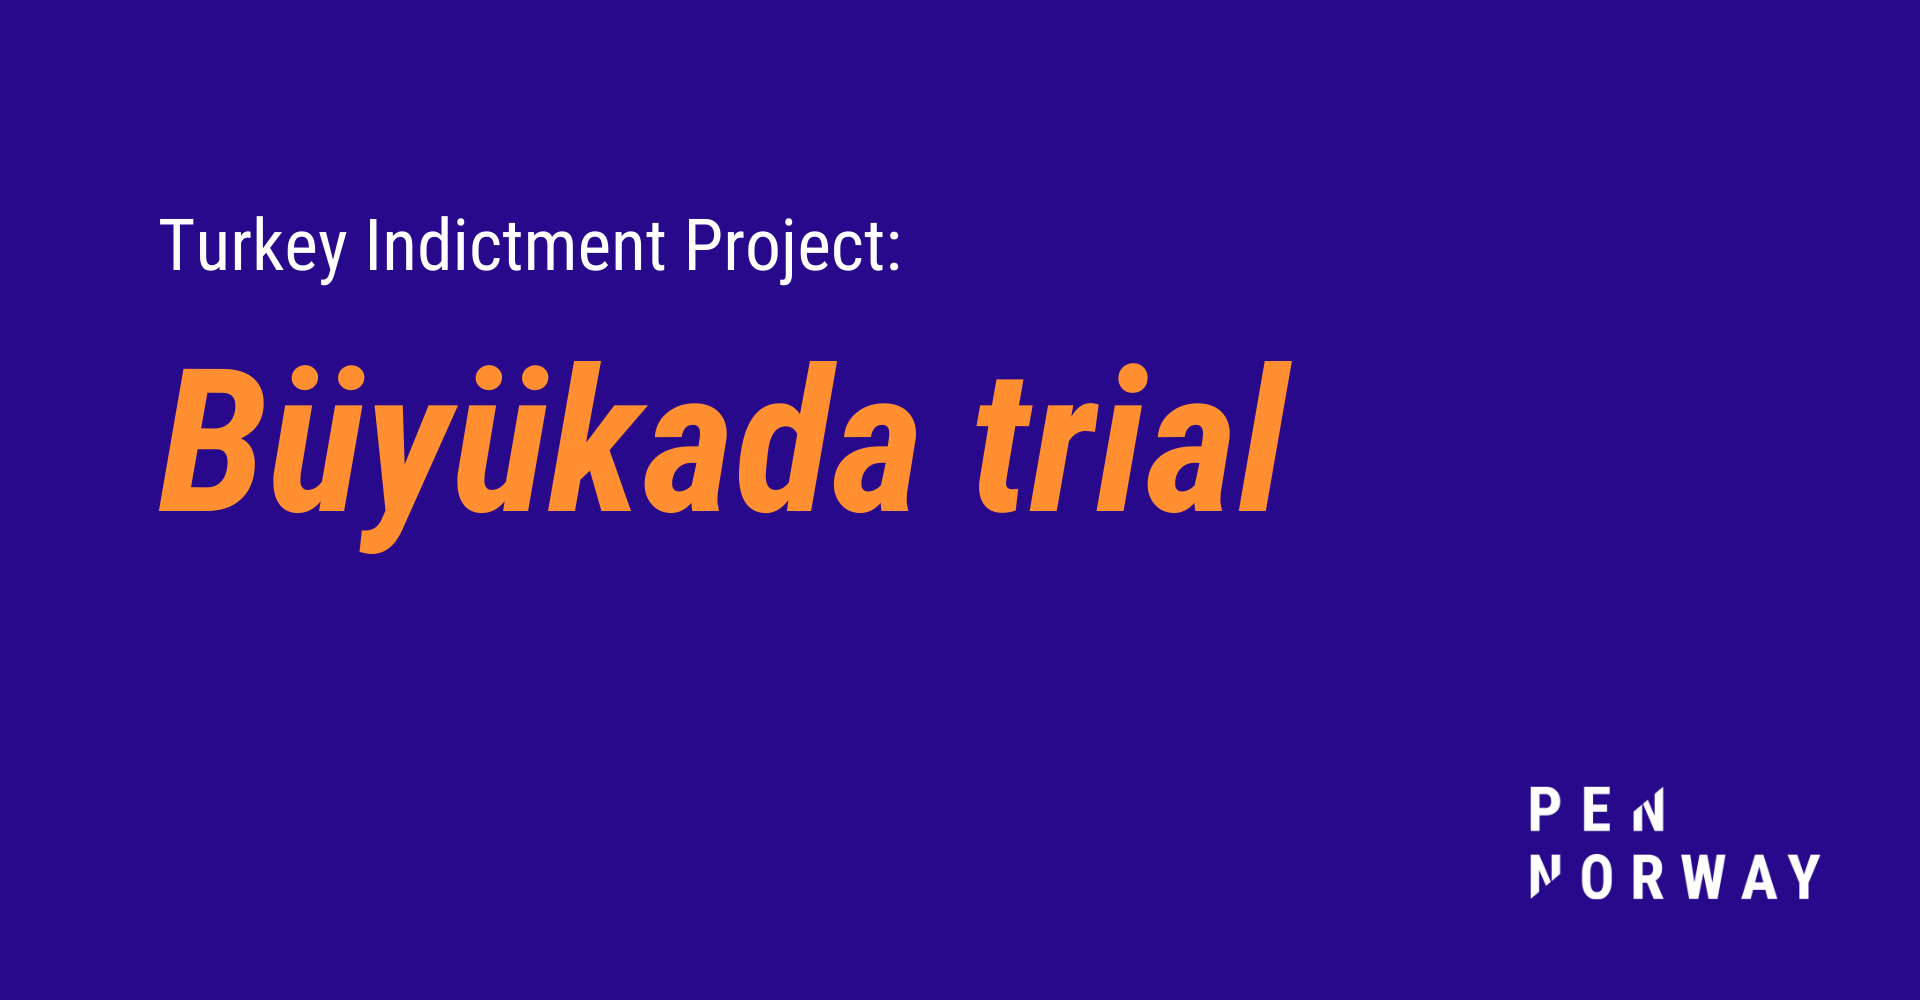 Turkey Indictment Project: Büyükada trial